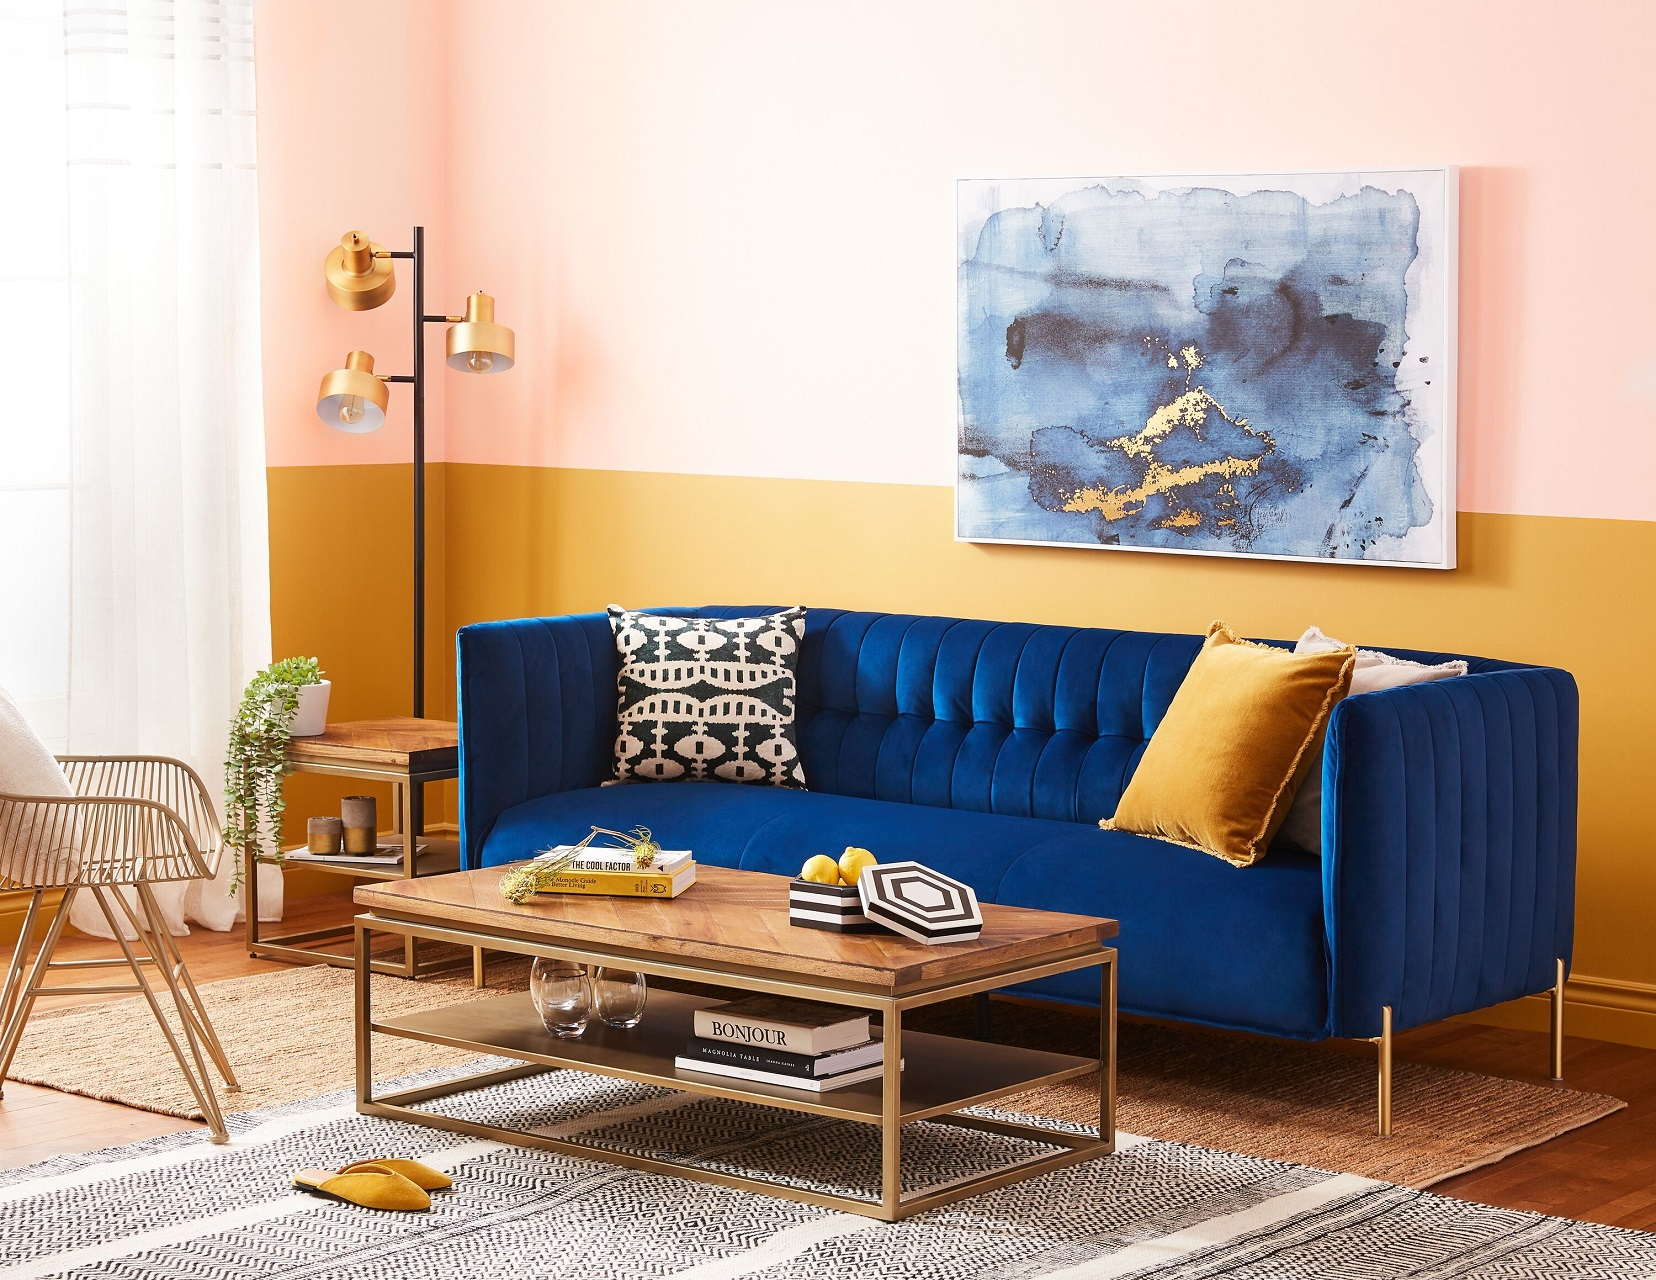 Blue velvet sofa in a contemporary living room with half mustard yellow and pastel pink walls